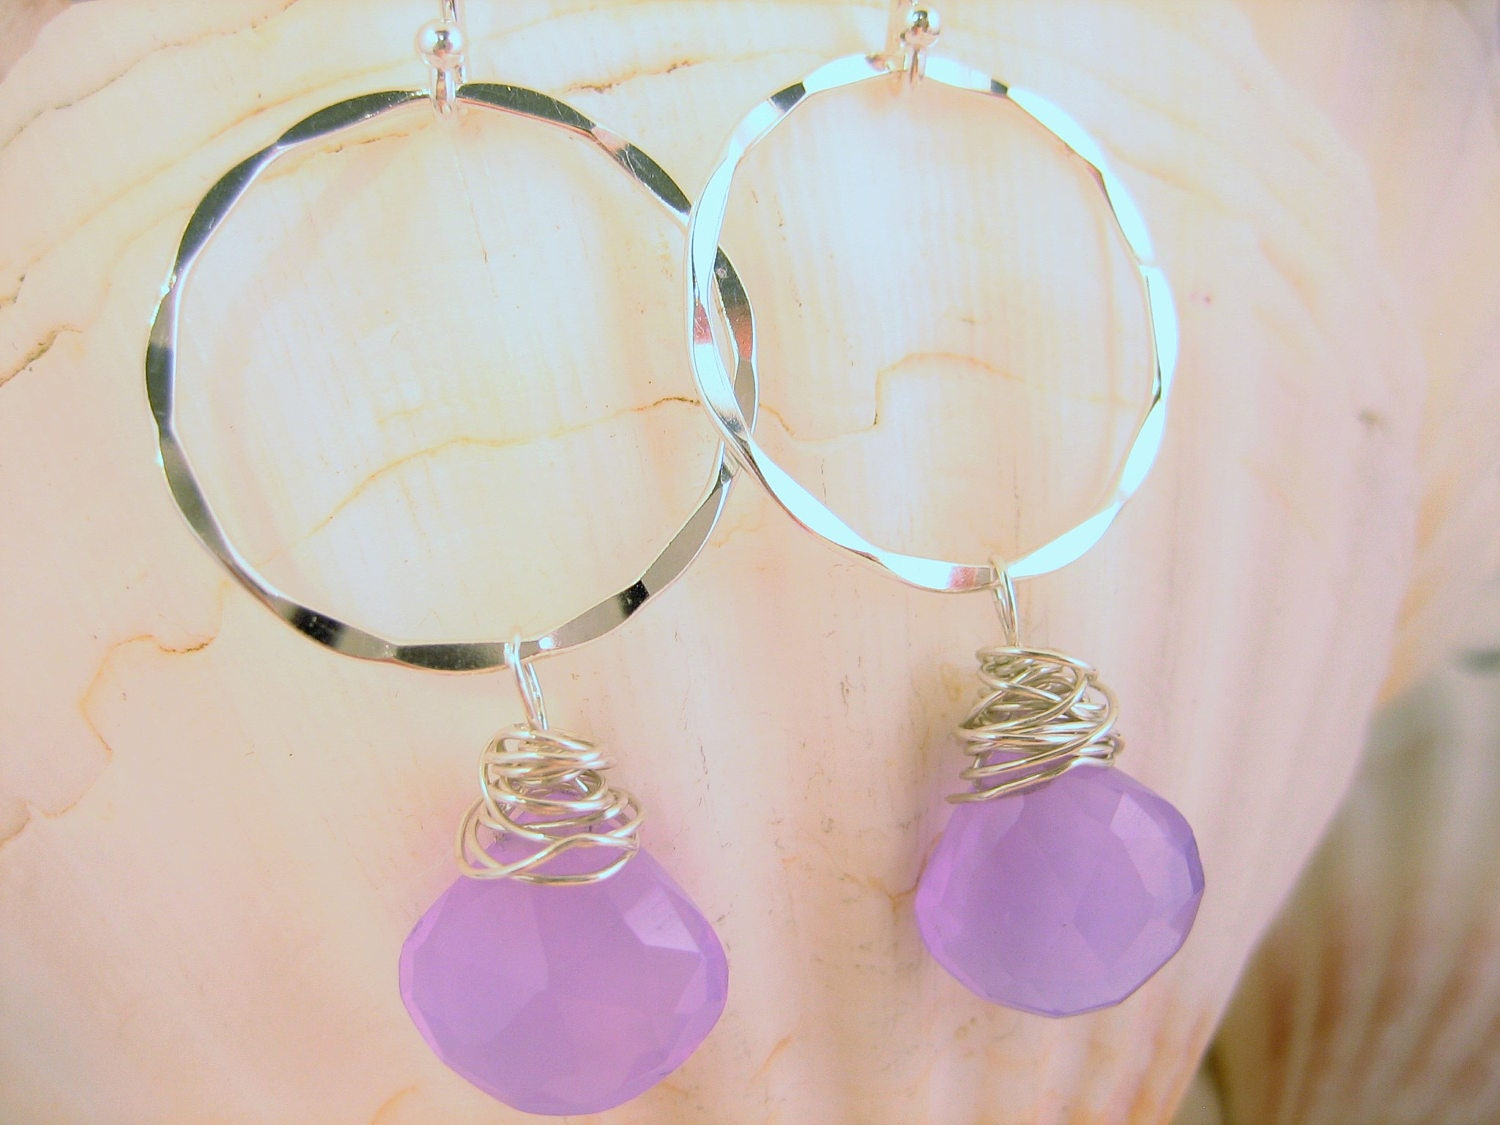 Purple chalcedony hammered silver earrings, small dangle open circle with purple - lavender stone, handmade hammered earrings, gift for her